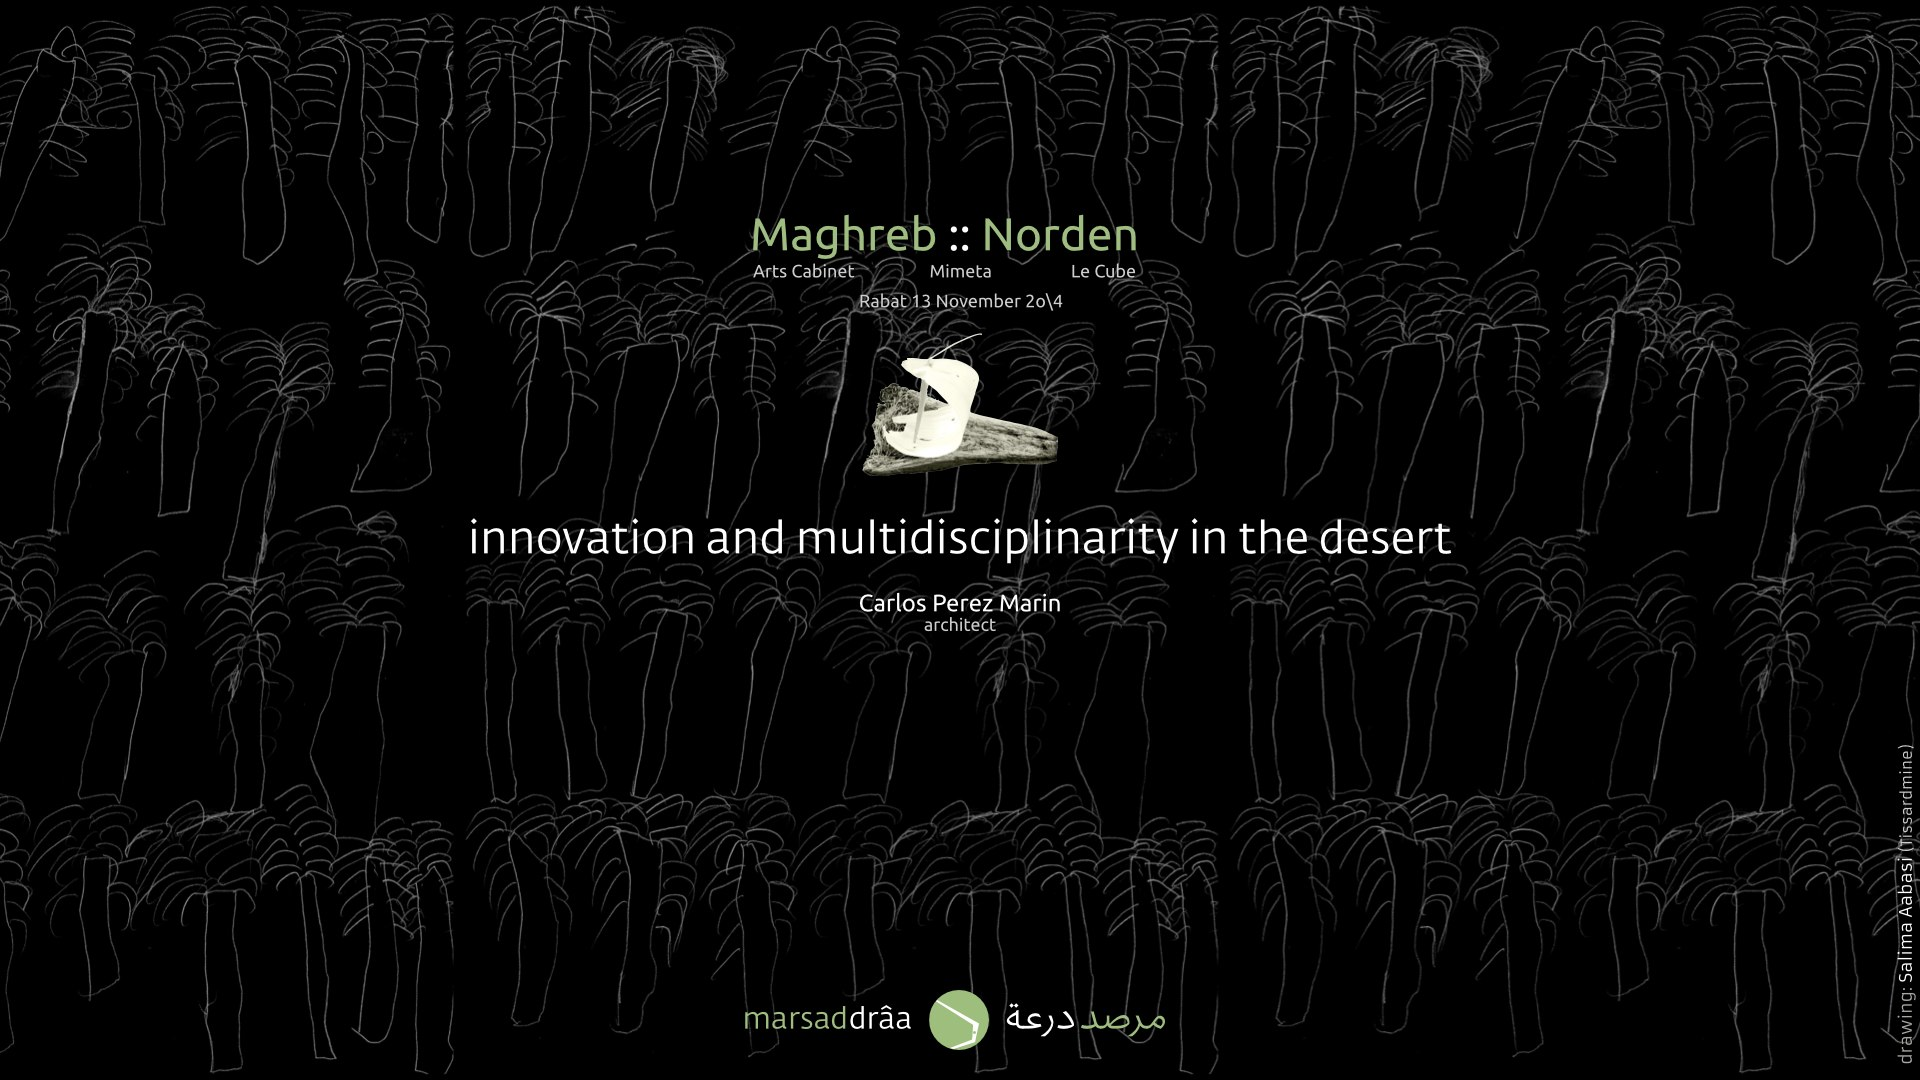 The extreme conditions of the desert offers us a wide variety of complex spaces for innovation, where multidisciplinarity it is not an option but an imperative. Geography, natural ecosystems, anthropology, history, architecture, engineering, economy... are some of the issues that must be considered and studied in order to propose any (cultural) development in these regions.